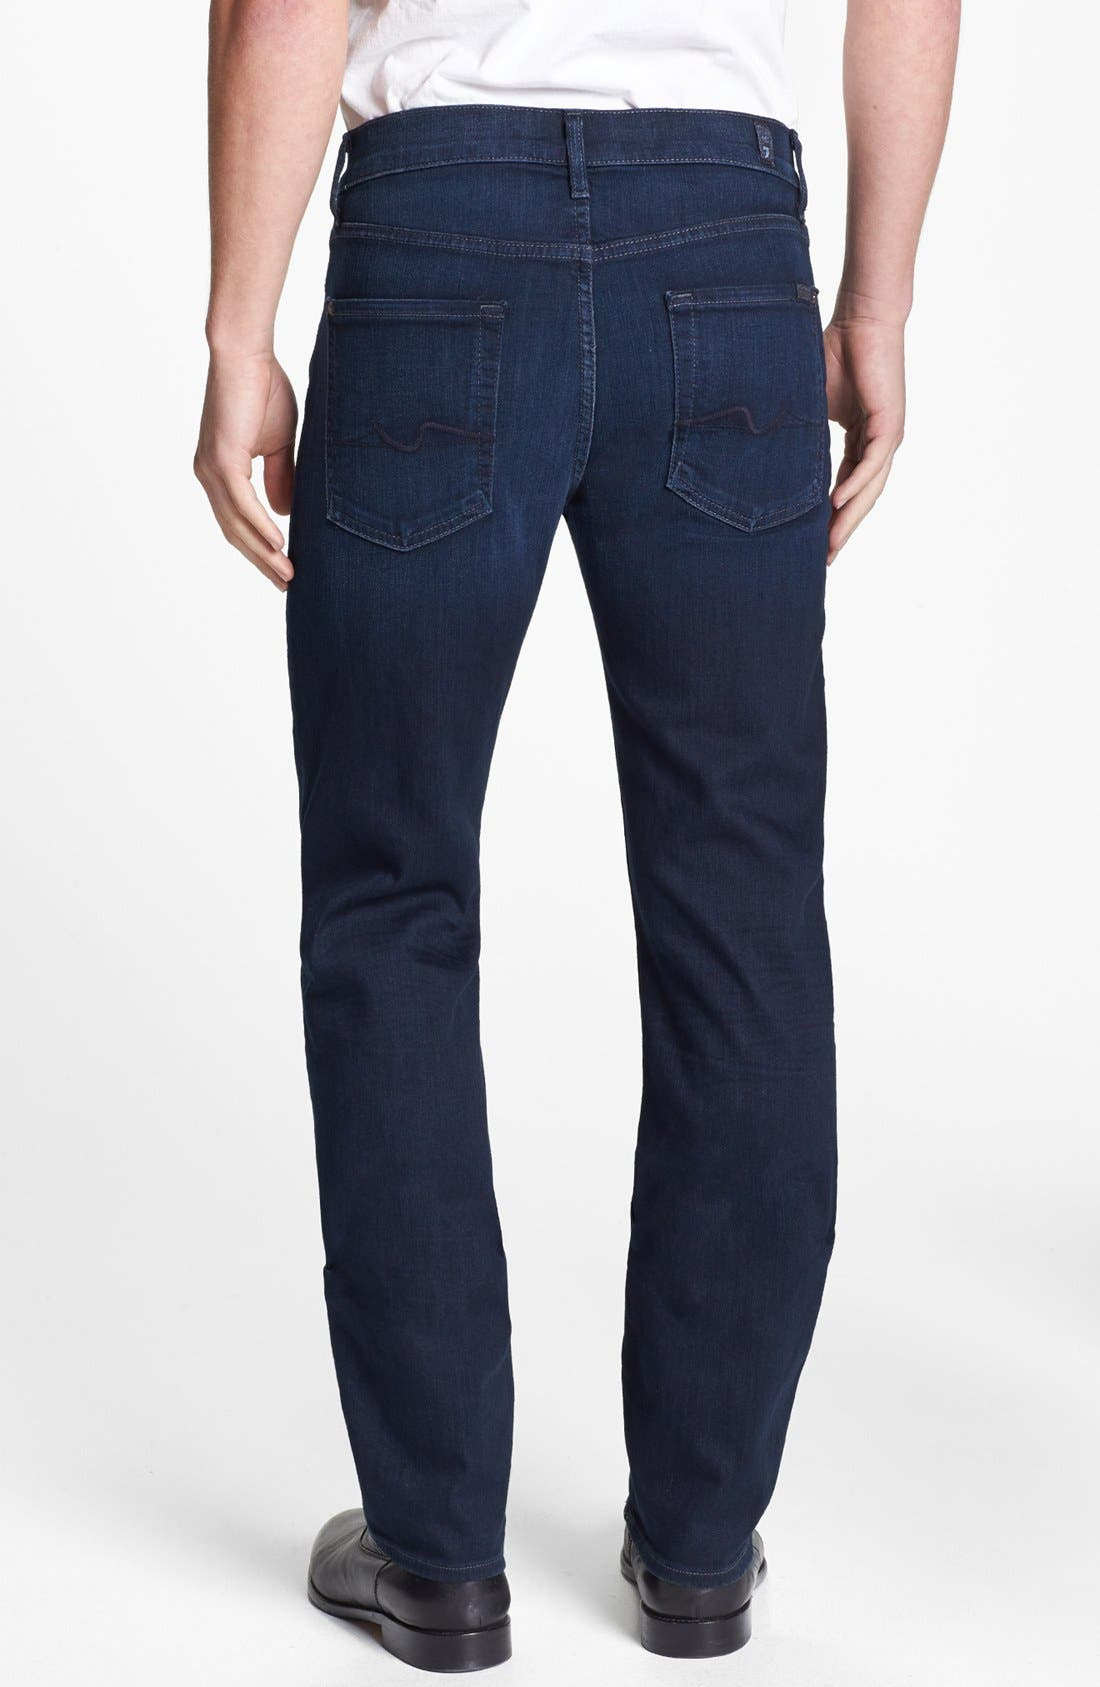 'Slimmy - Luxe Performance' Slim Fit Jeans,                             Alternate thumbnail 3, color,                             402